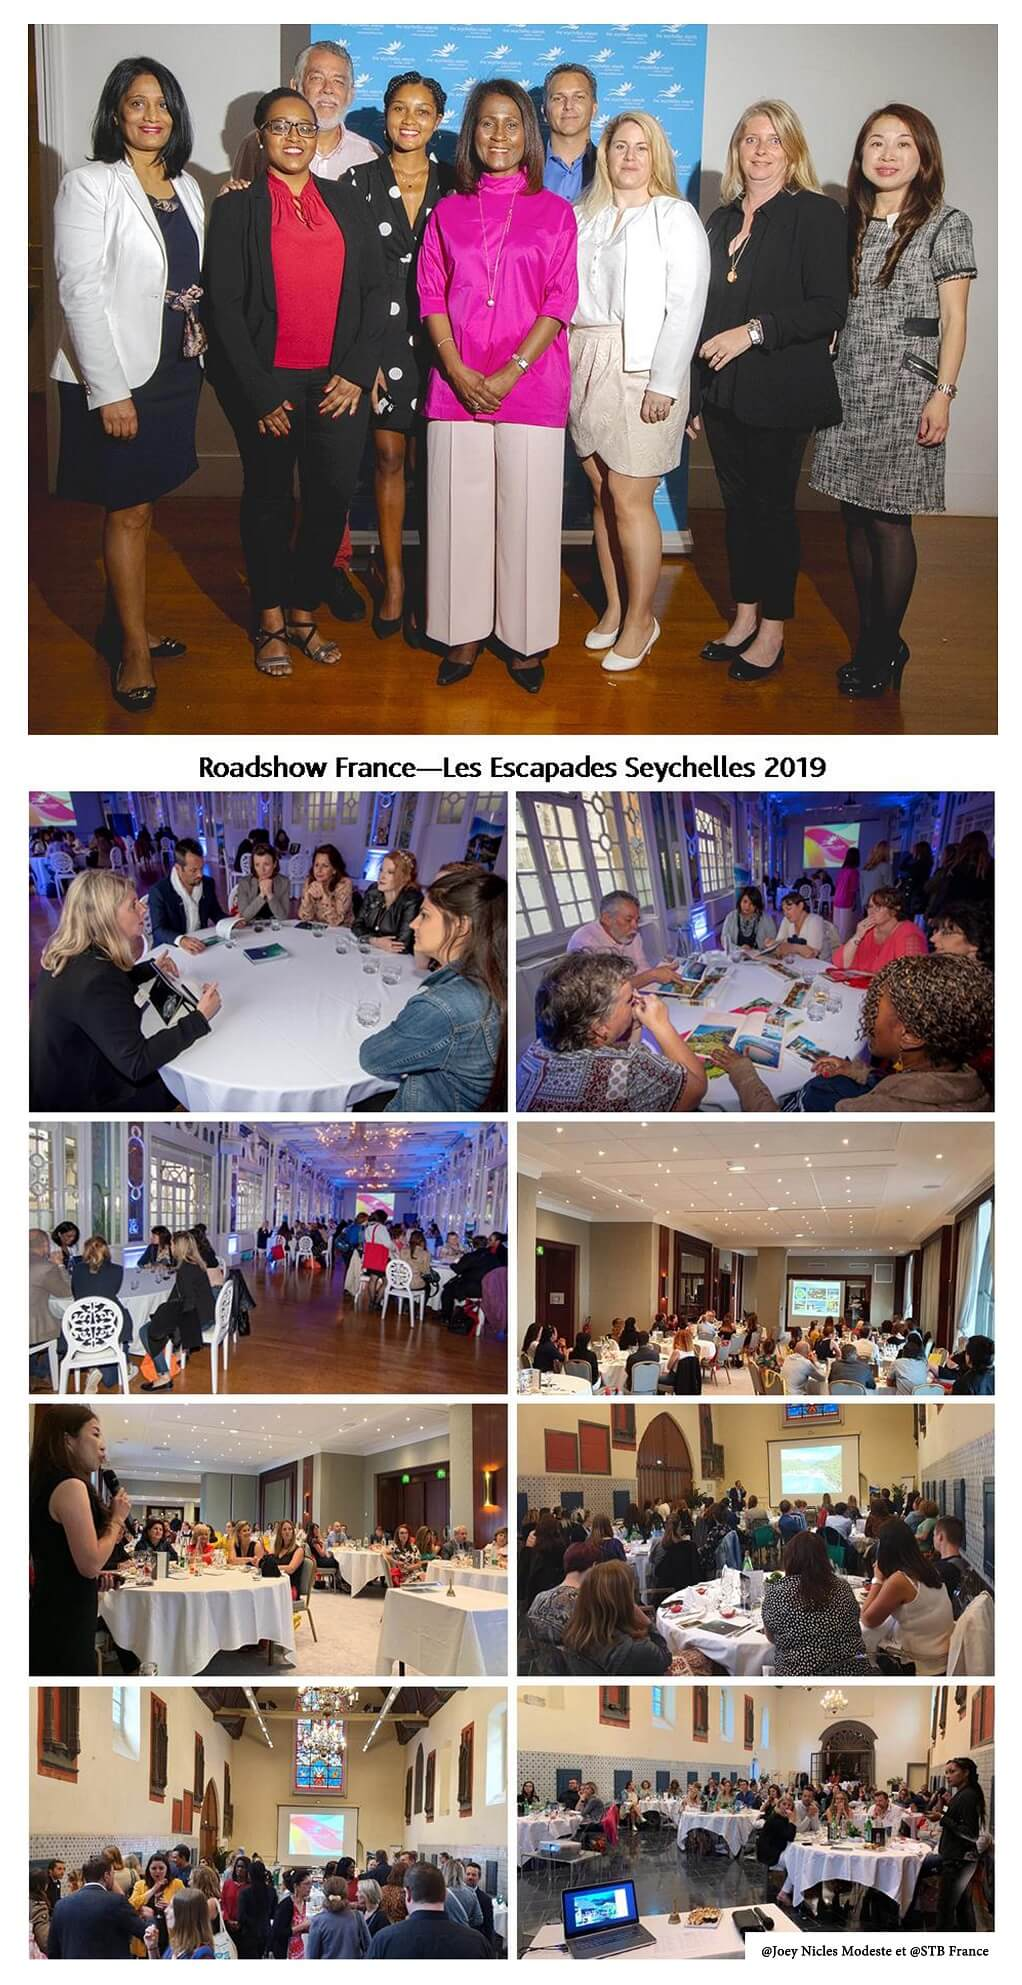 Les Escapades Seychelles 2019, another Successful Edition for the Destination